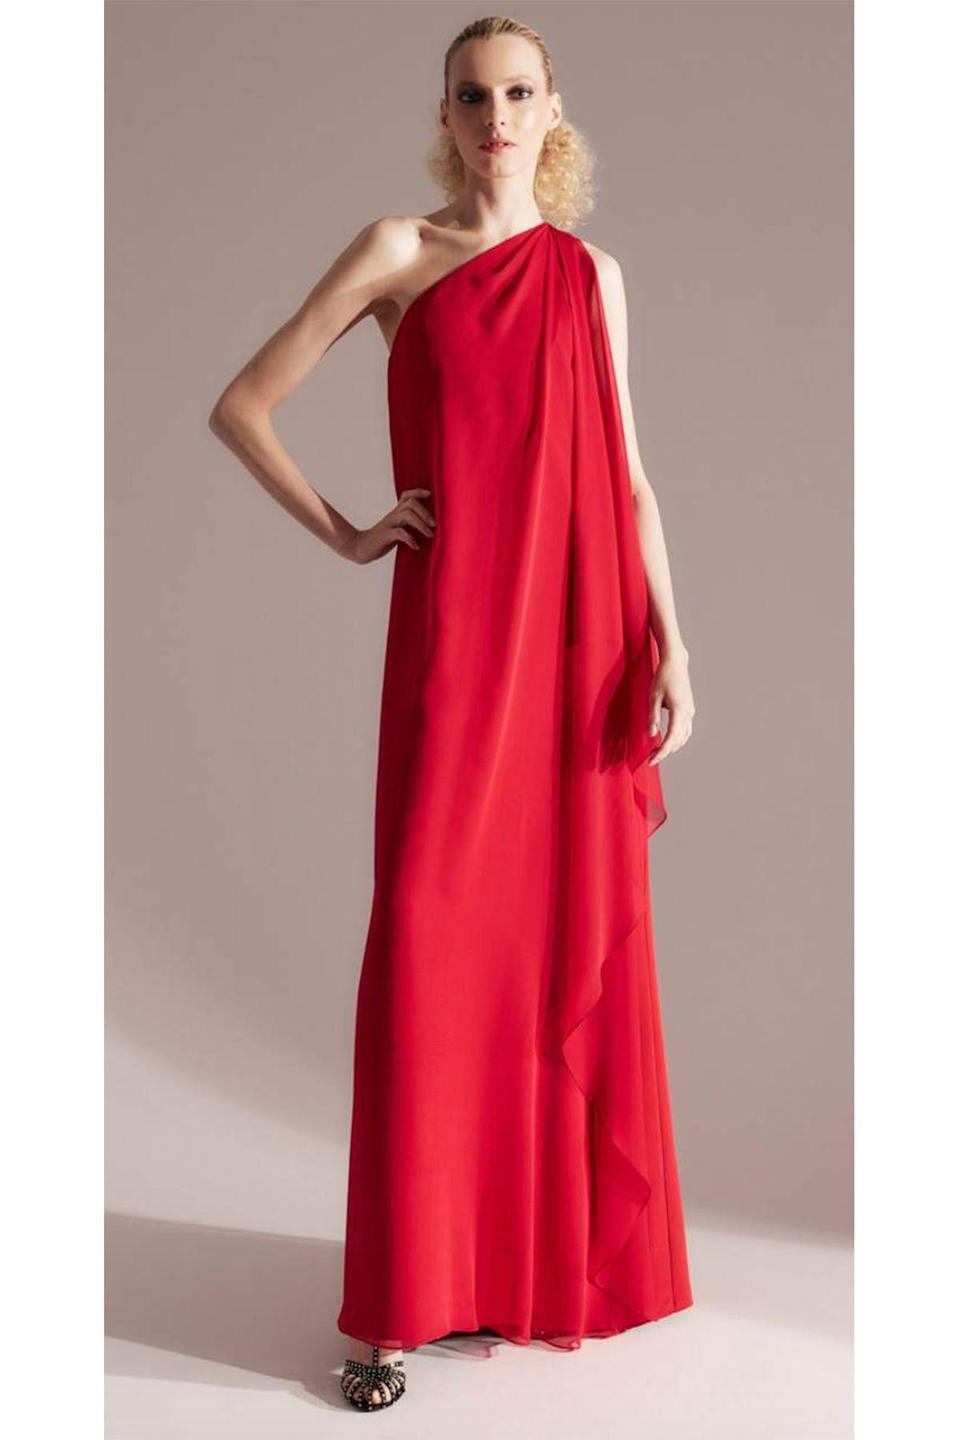 """<p><strong>Halston</strong></p><p>halston.com</p><p><strong>$1295.00</strong></p><p><a href=""""https://go.redirectingat.com?id=74968X1596630&url=https%3A%2F%2Fhalston.com%2Fcollections%2Fhalston-x-netflix-capsule%2Fproducts%2Fhalston-marisa-one-shoulder-crepe-gown-halston-red&sref=https%3A%2F%2Fwww.townandcountrymag.com%2Fstyle%2Ffashion-trends%2Fg36651434%2Fshop-netflix-halston-clothes%2F"""" rel=""""nofollow noopener"""" target=""""_blank"""" data-ylk=""""slk:Shop Now"""" class=""""link rapid-noclick-resp"""">Shop Now</a></p>"""